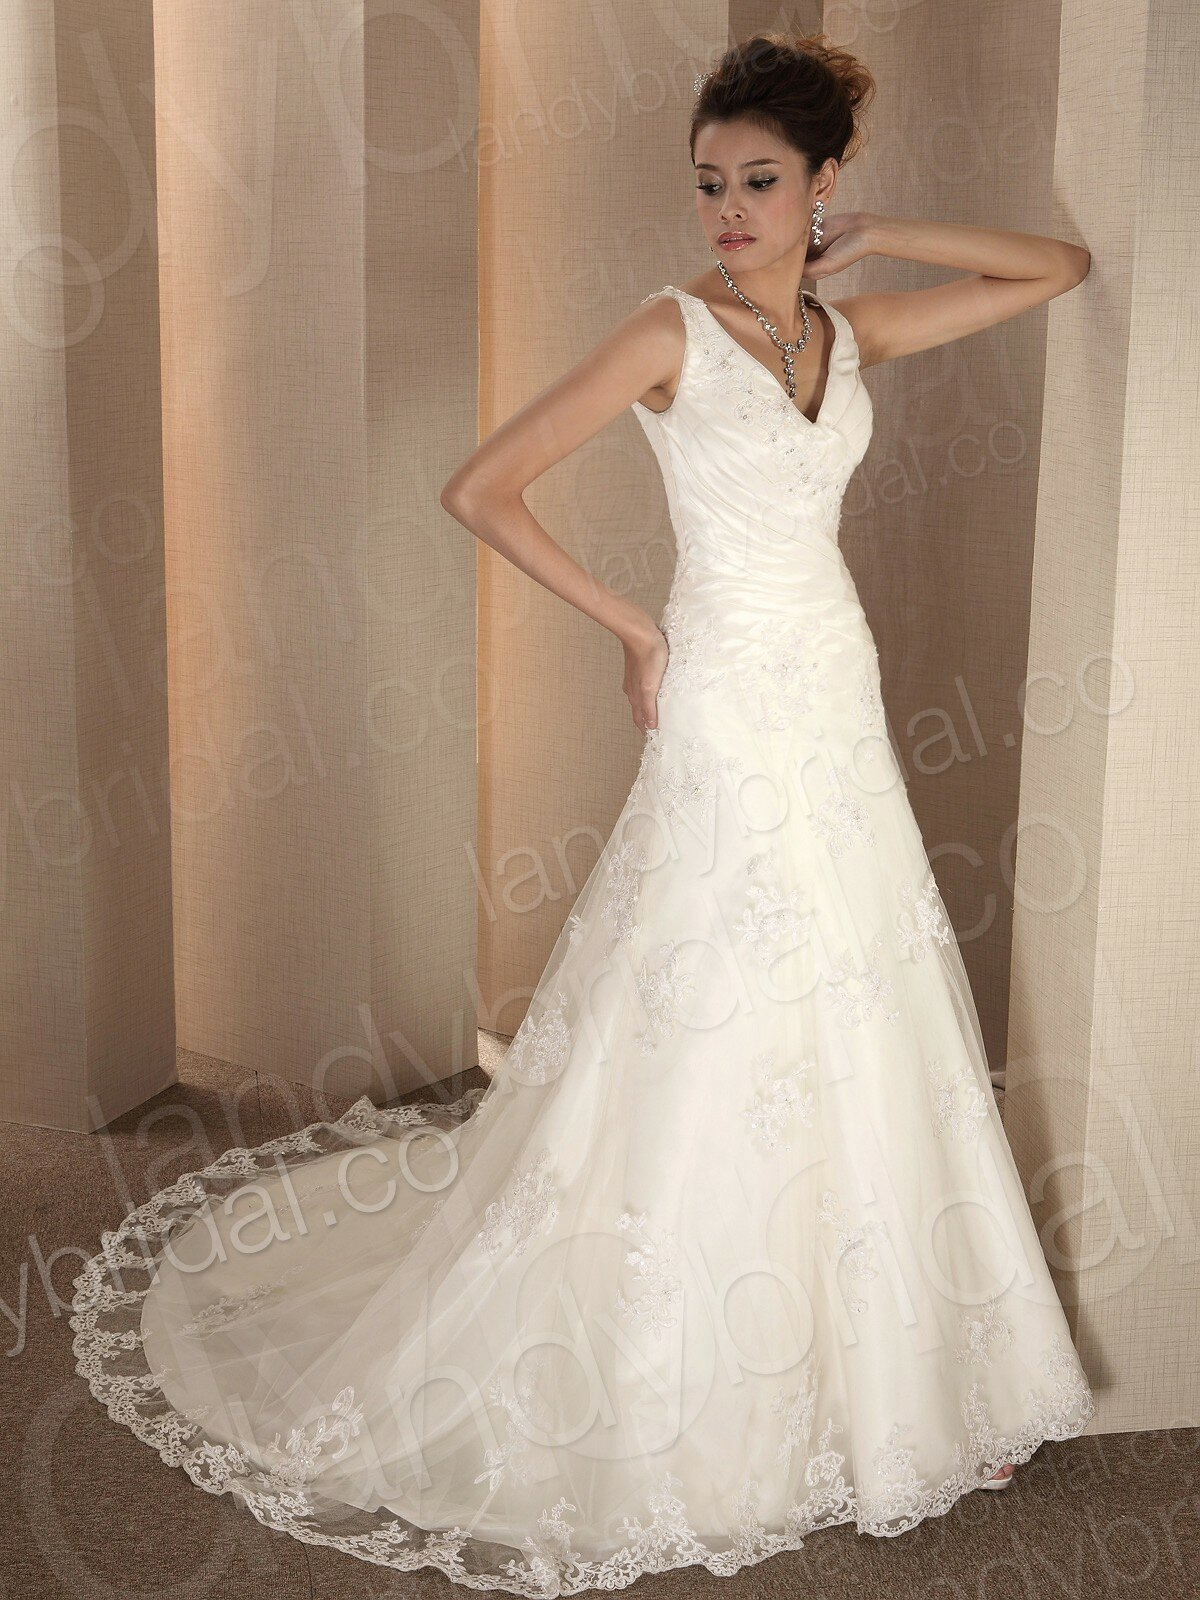 A line v neck wedding dresses pictures ideas guide to for When to buy wedding dress